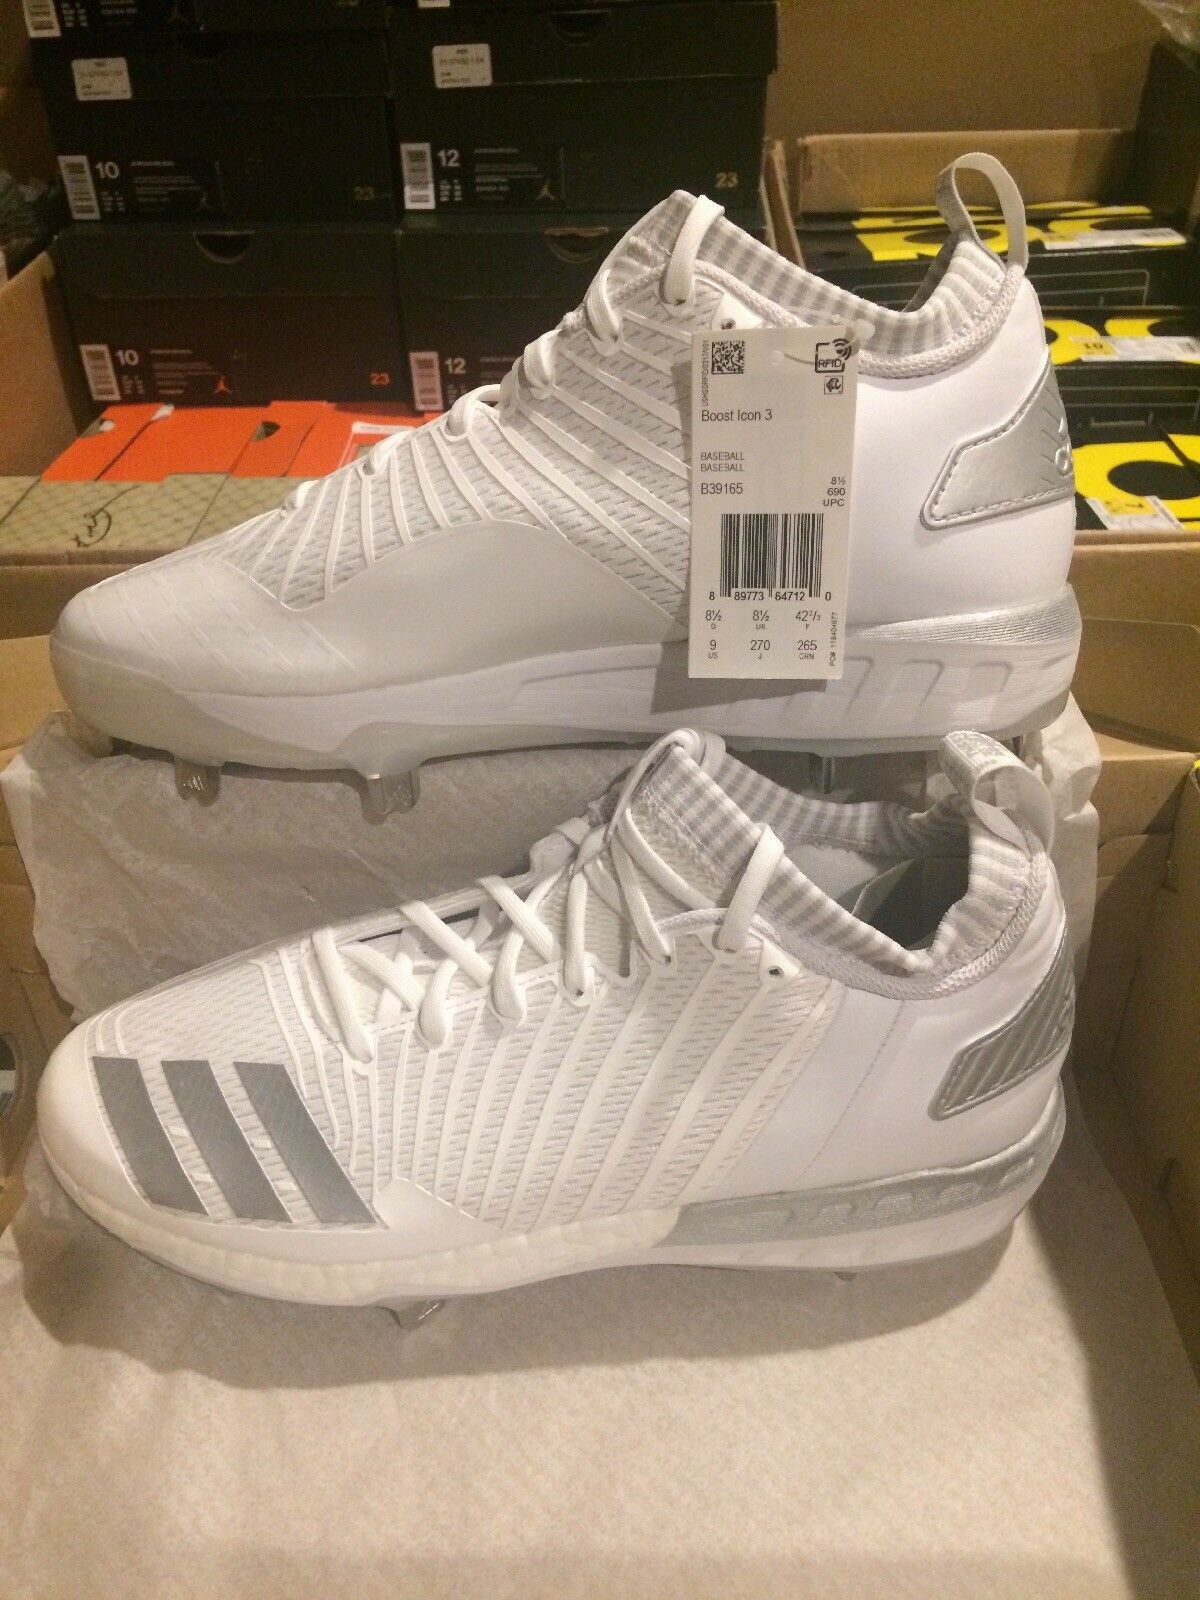 New   Adidas Boost Icon 3 Men's Size 12 Metal Baseball Cleats White - B39165